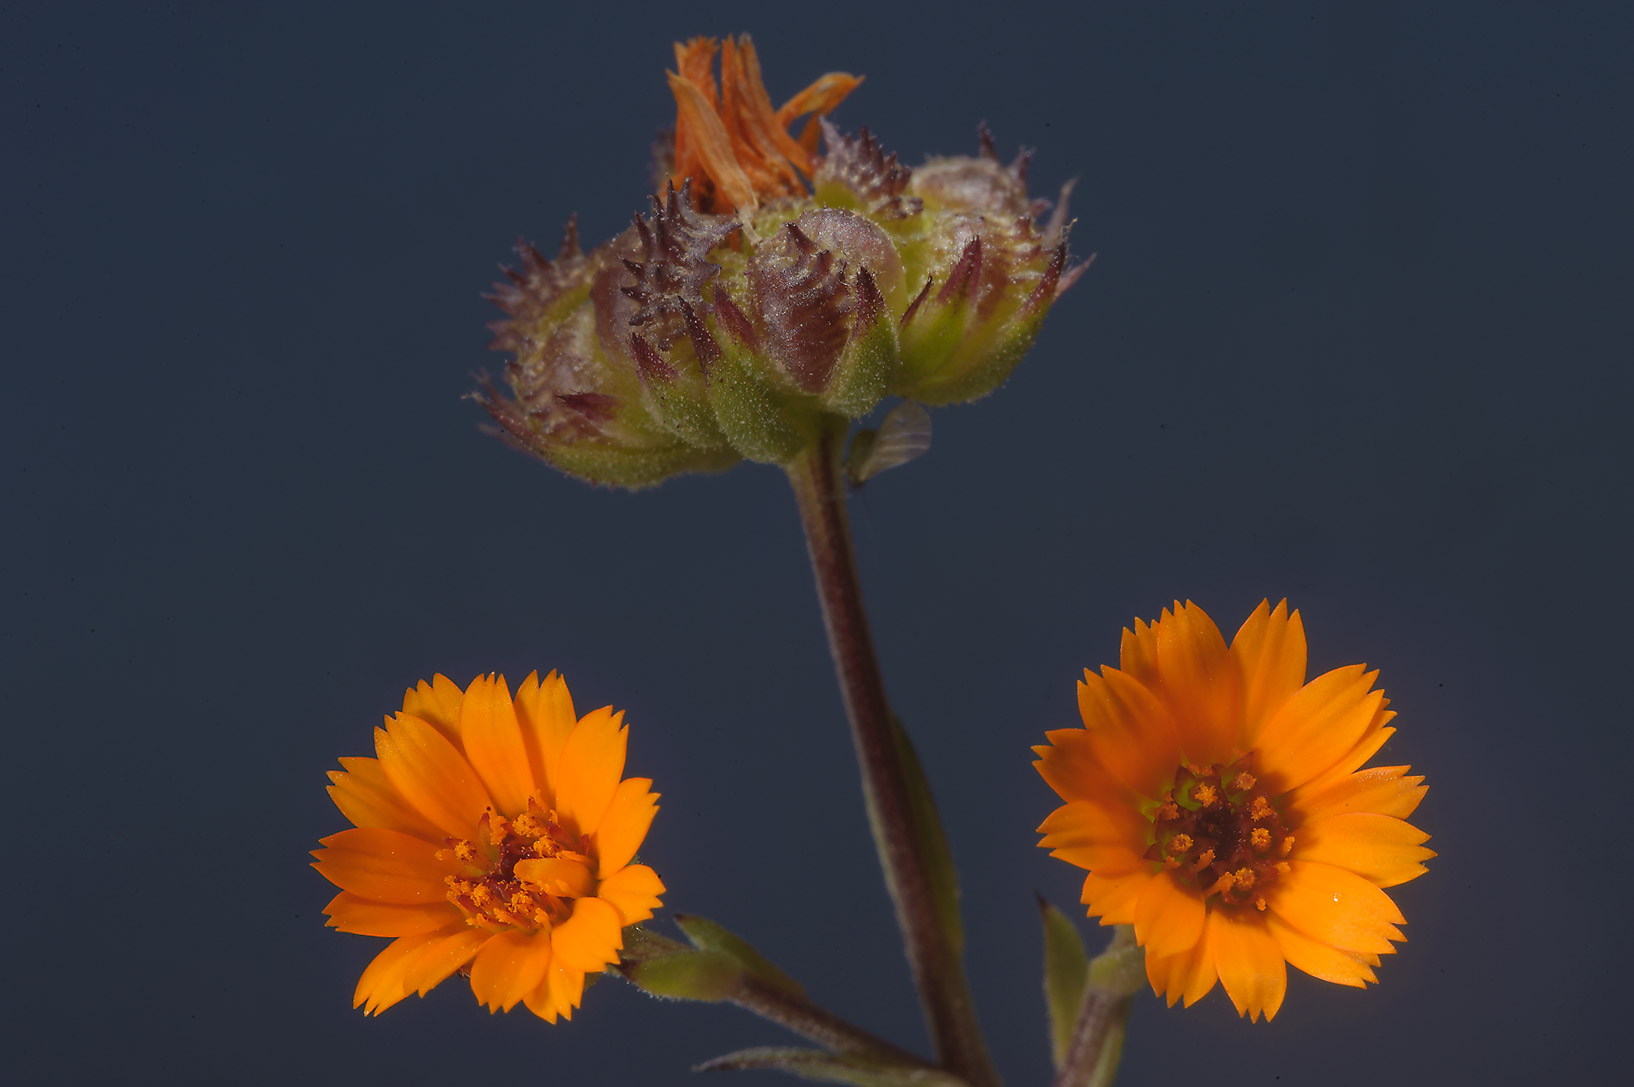 Seeds with flowers of Field Marigold (Calendula...farms area, in north-western Qatar